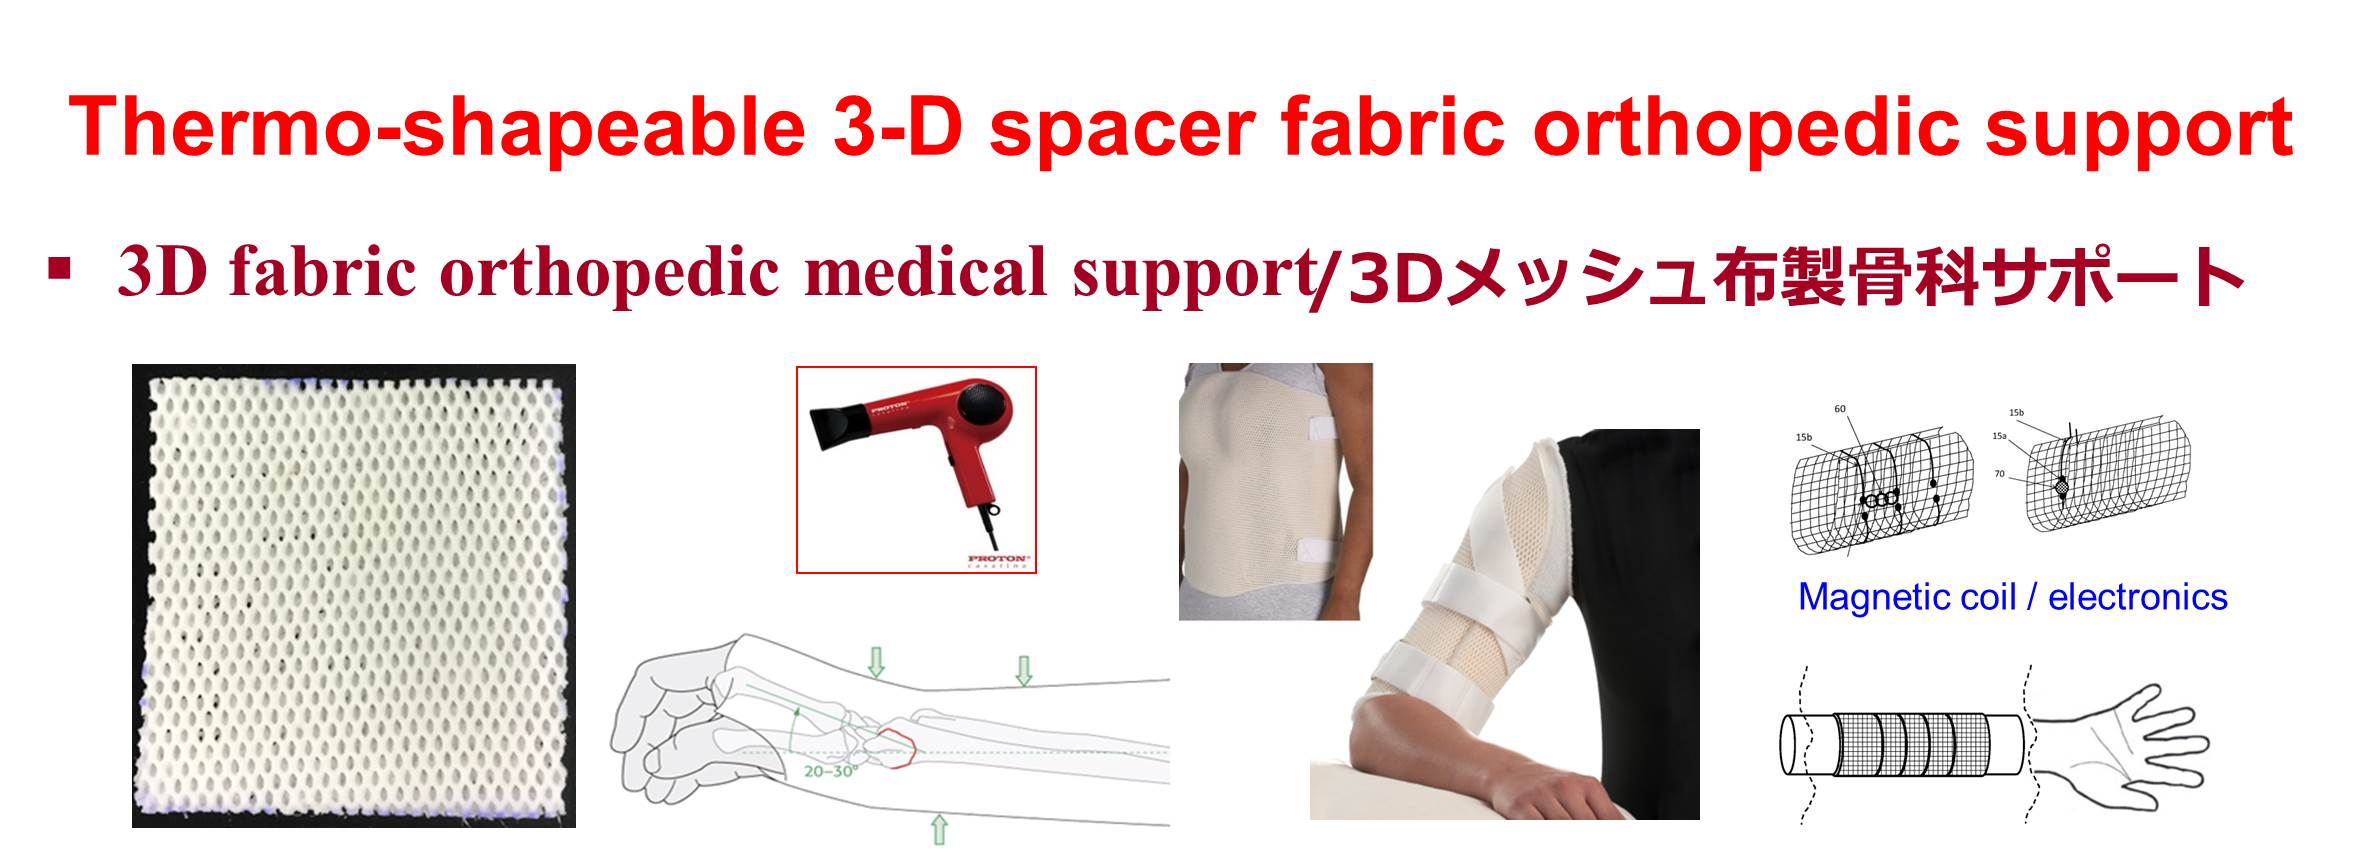 Thermo-shapeable  spacer fabric  for orthopedic support